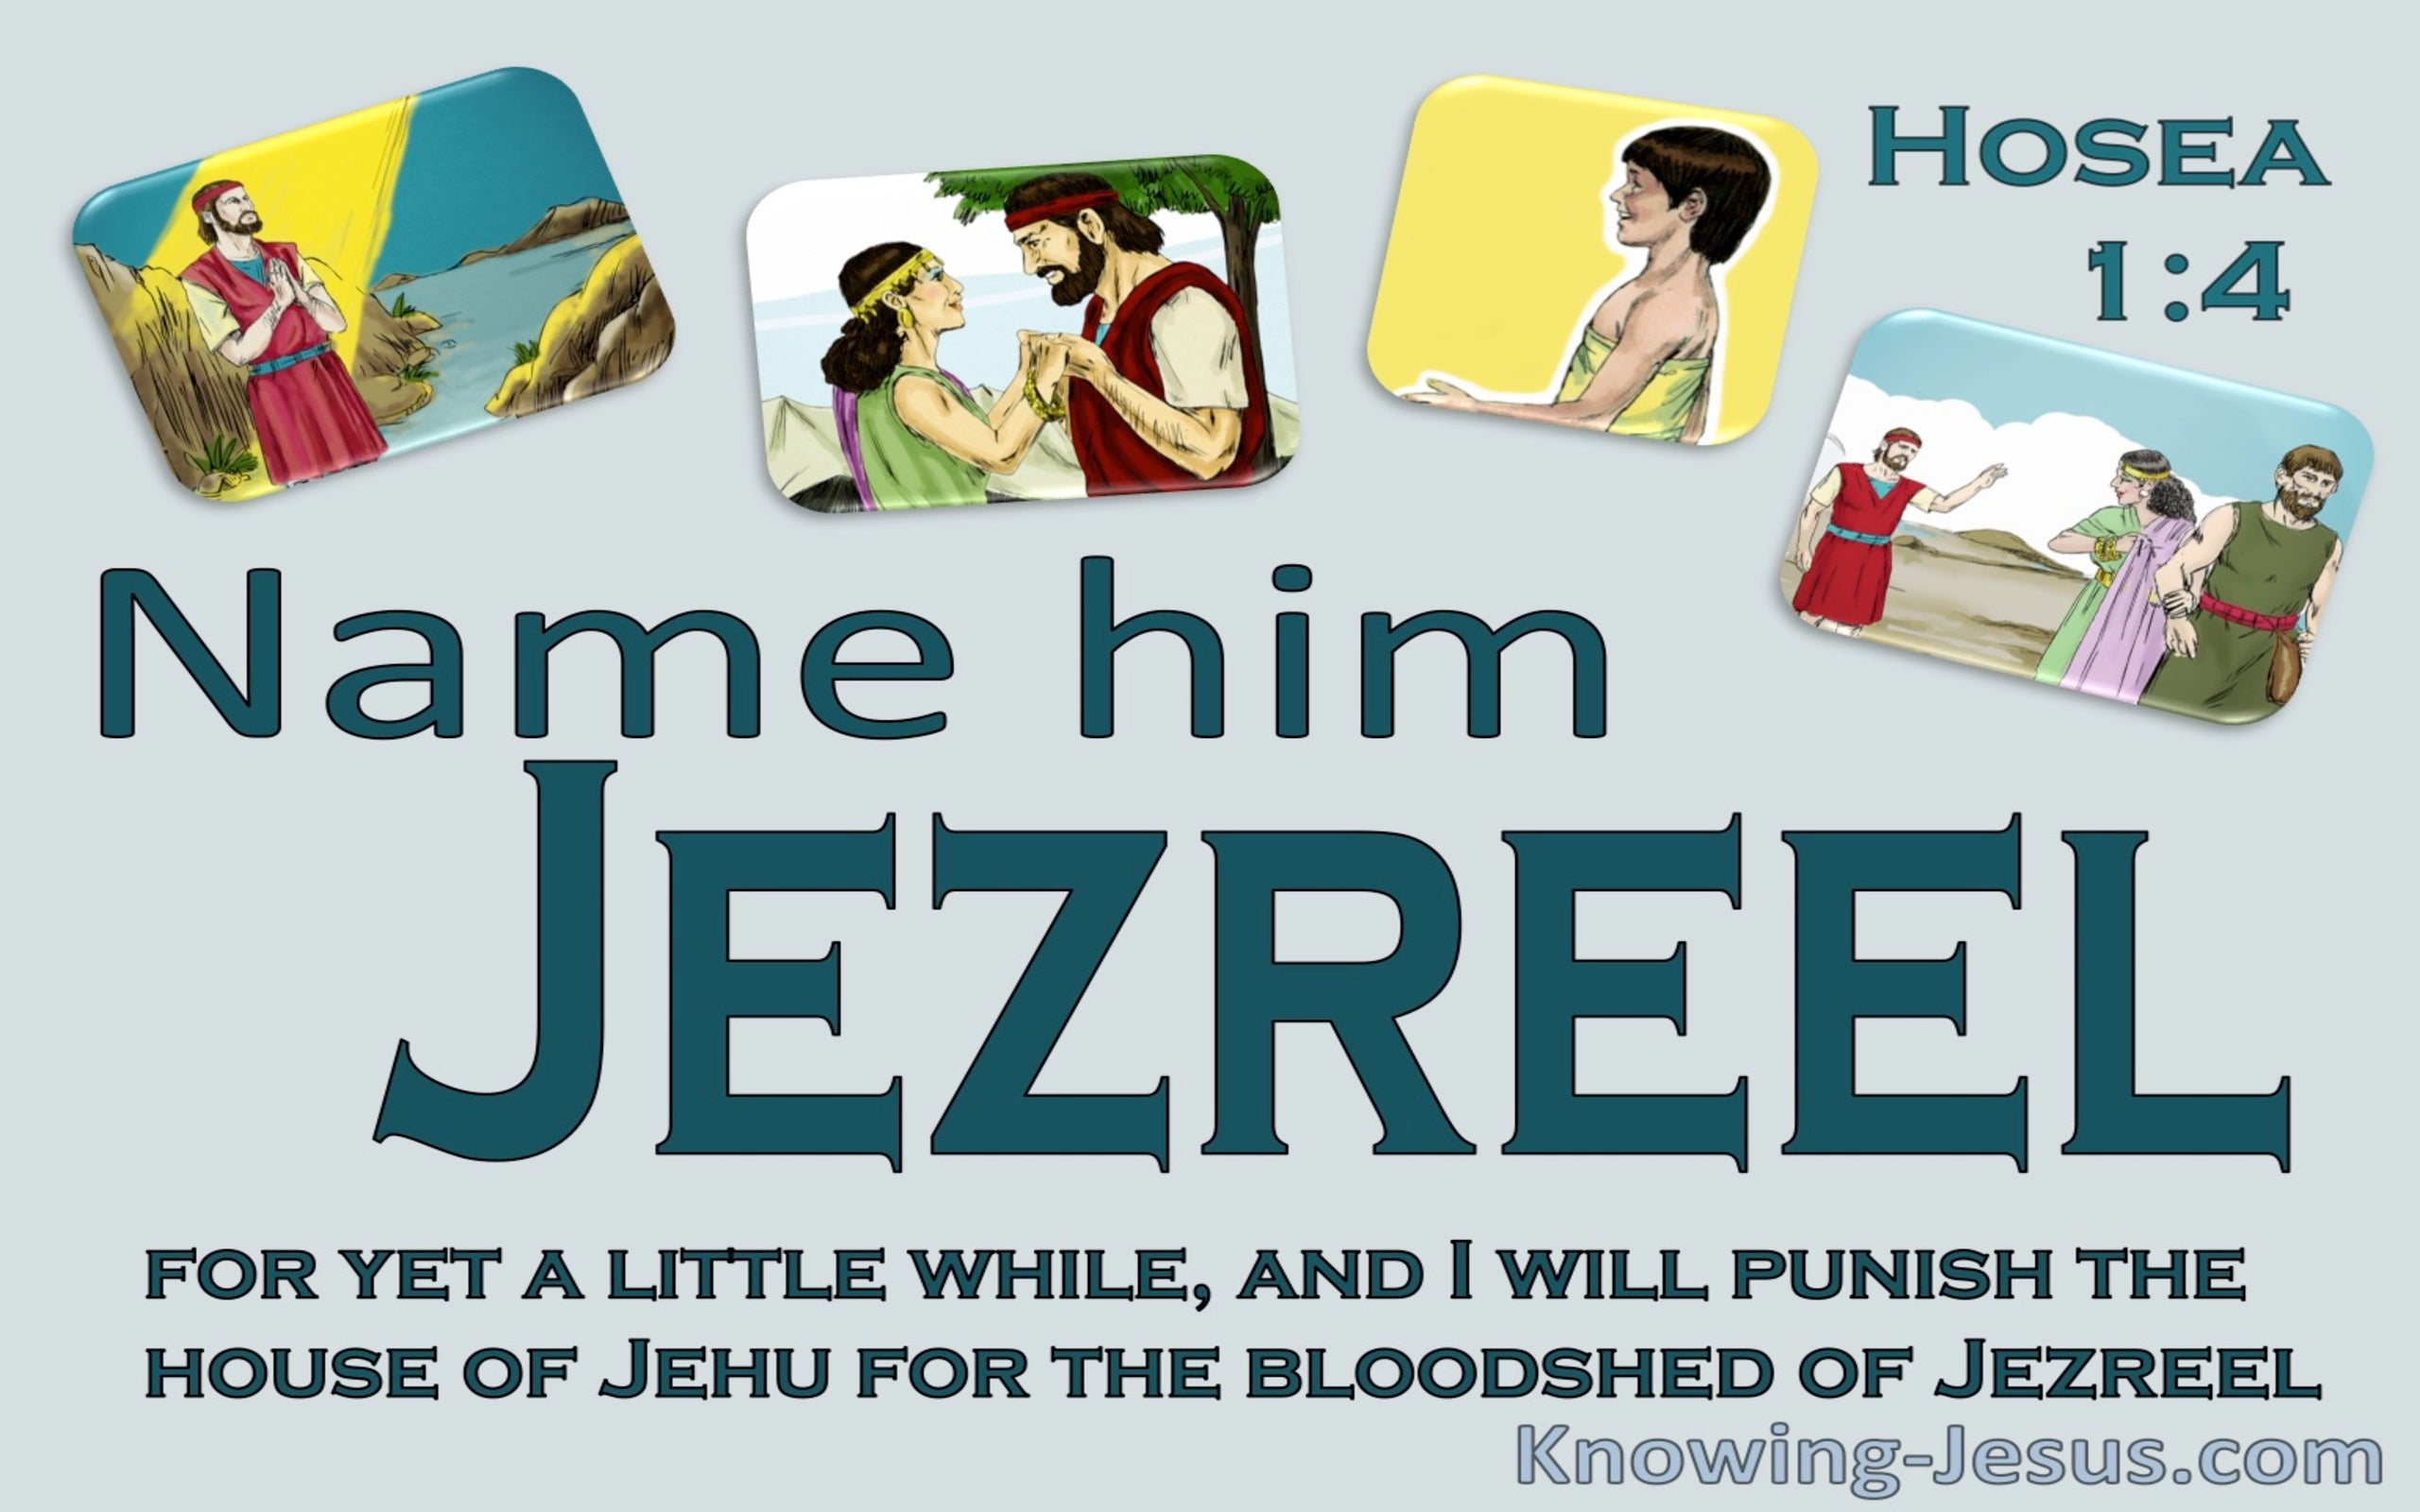 Hosea 1:4 The Lord Told Hosea Name Him Jezreel (aqua)